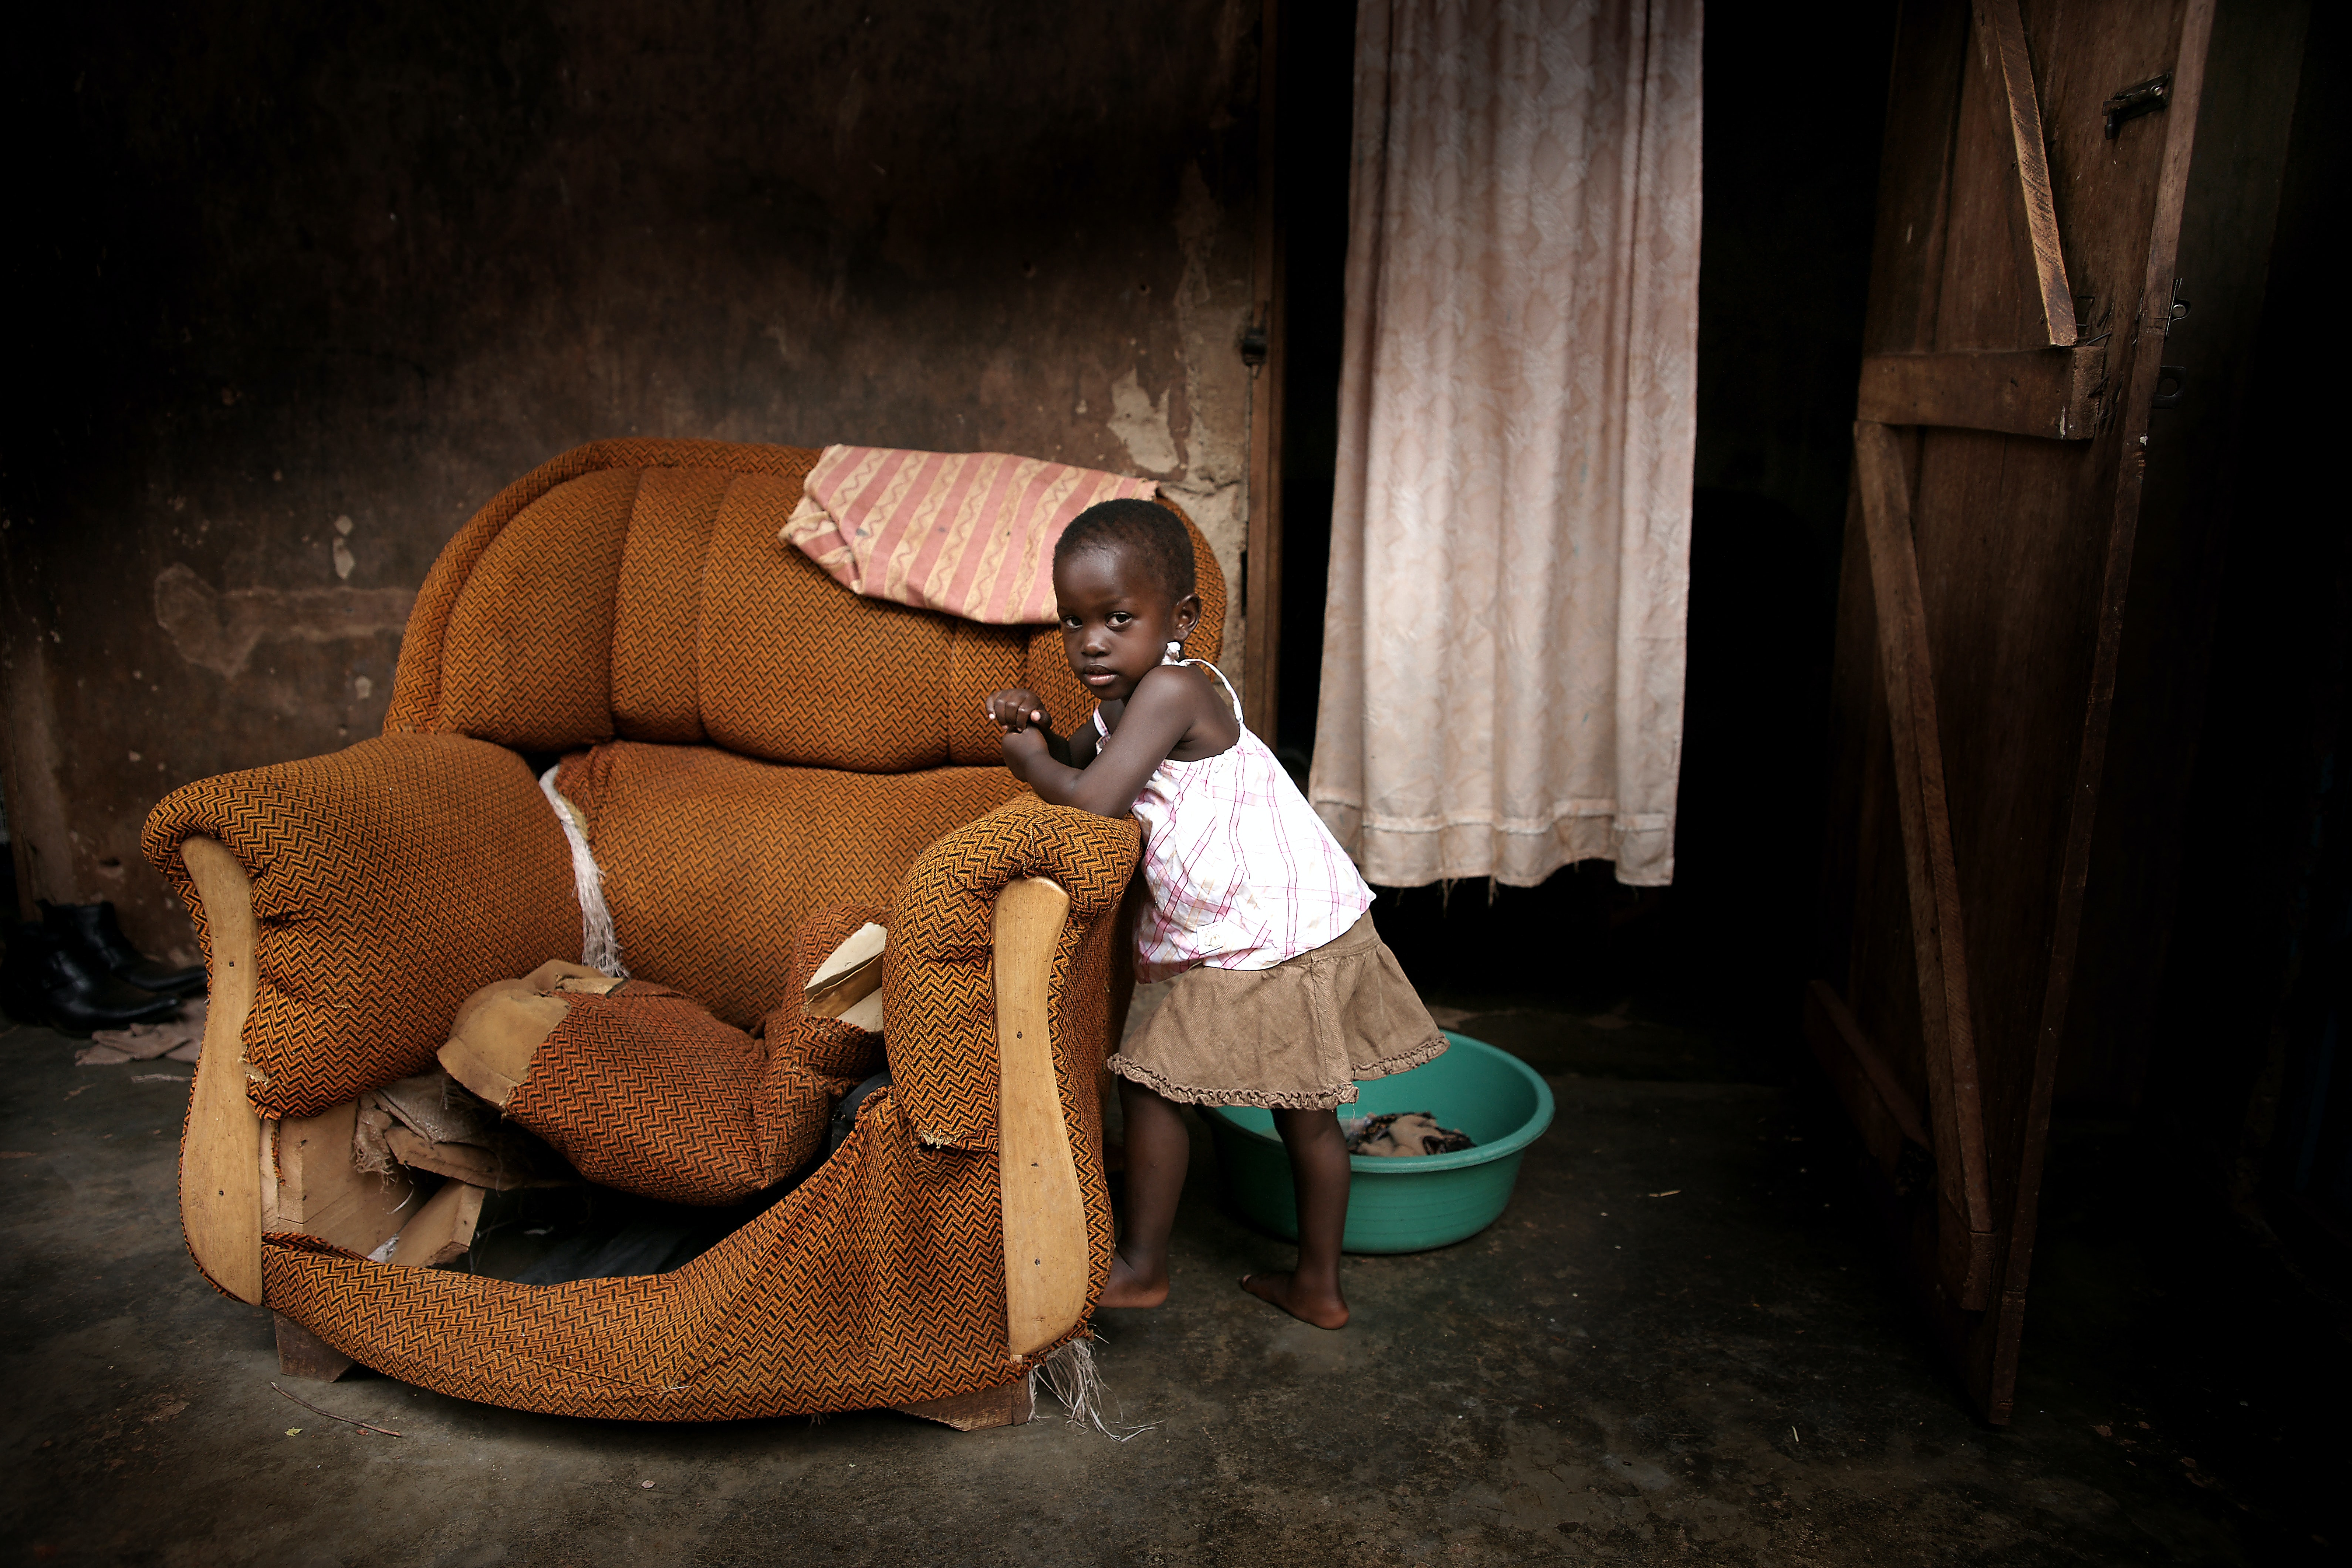 A little girl leaning against an old, broken couch that has no cushions in a house in Kampala